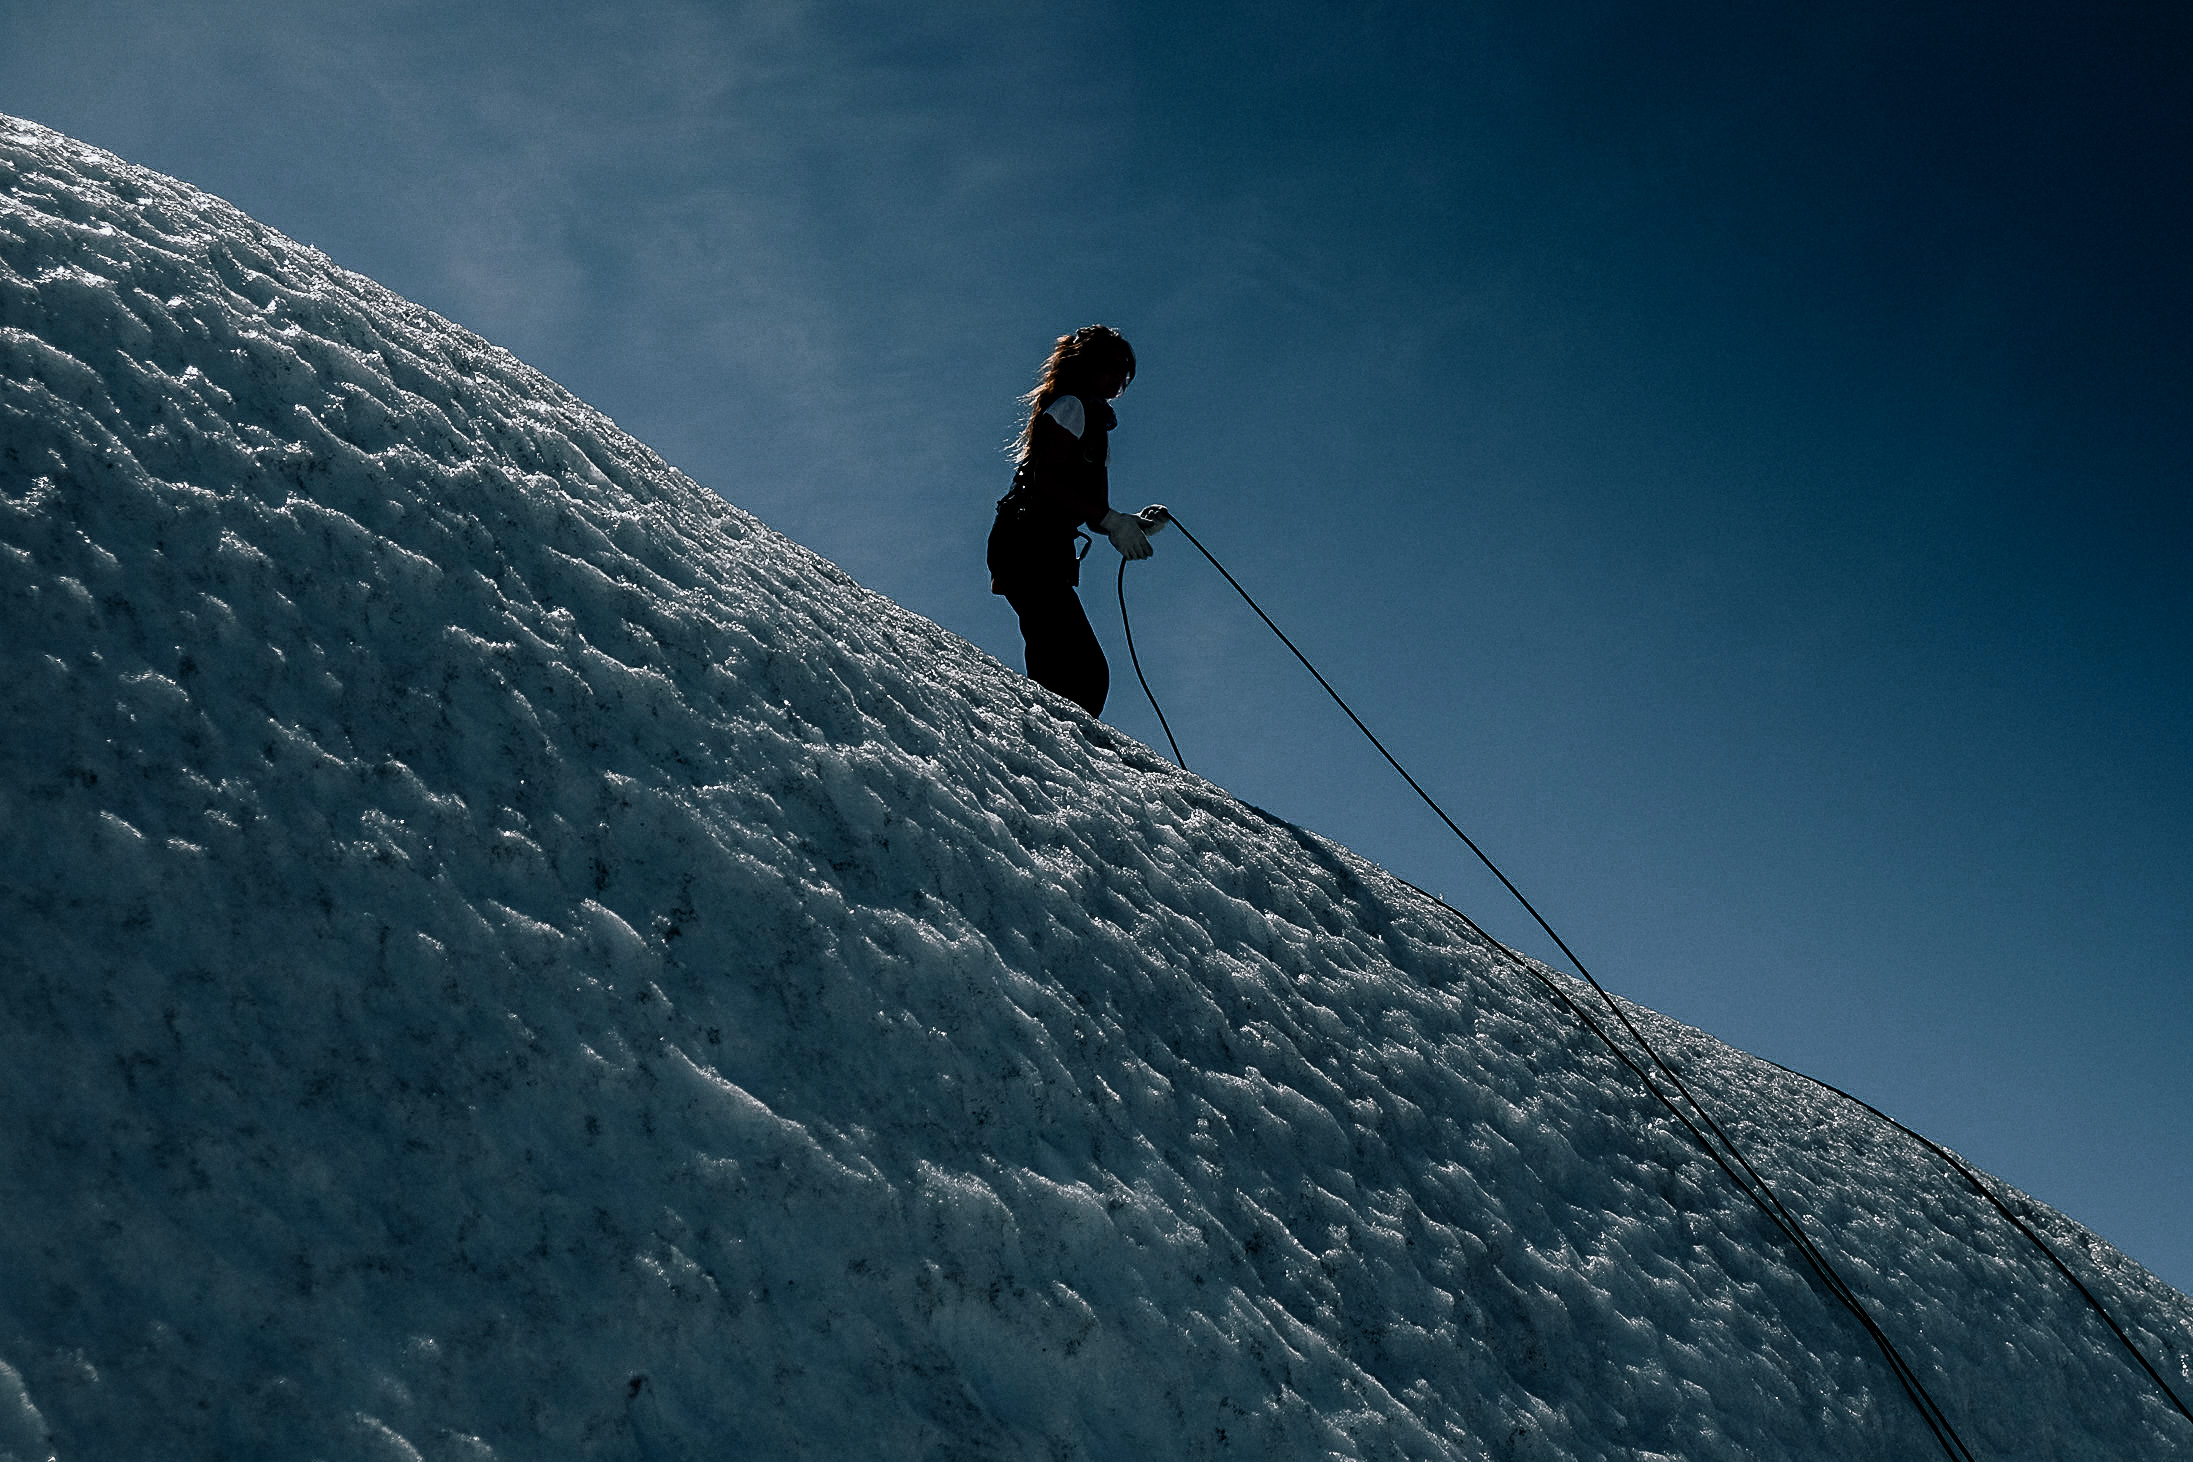 Anchoring the climbers.